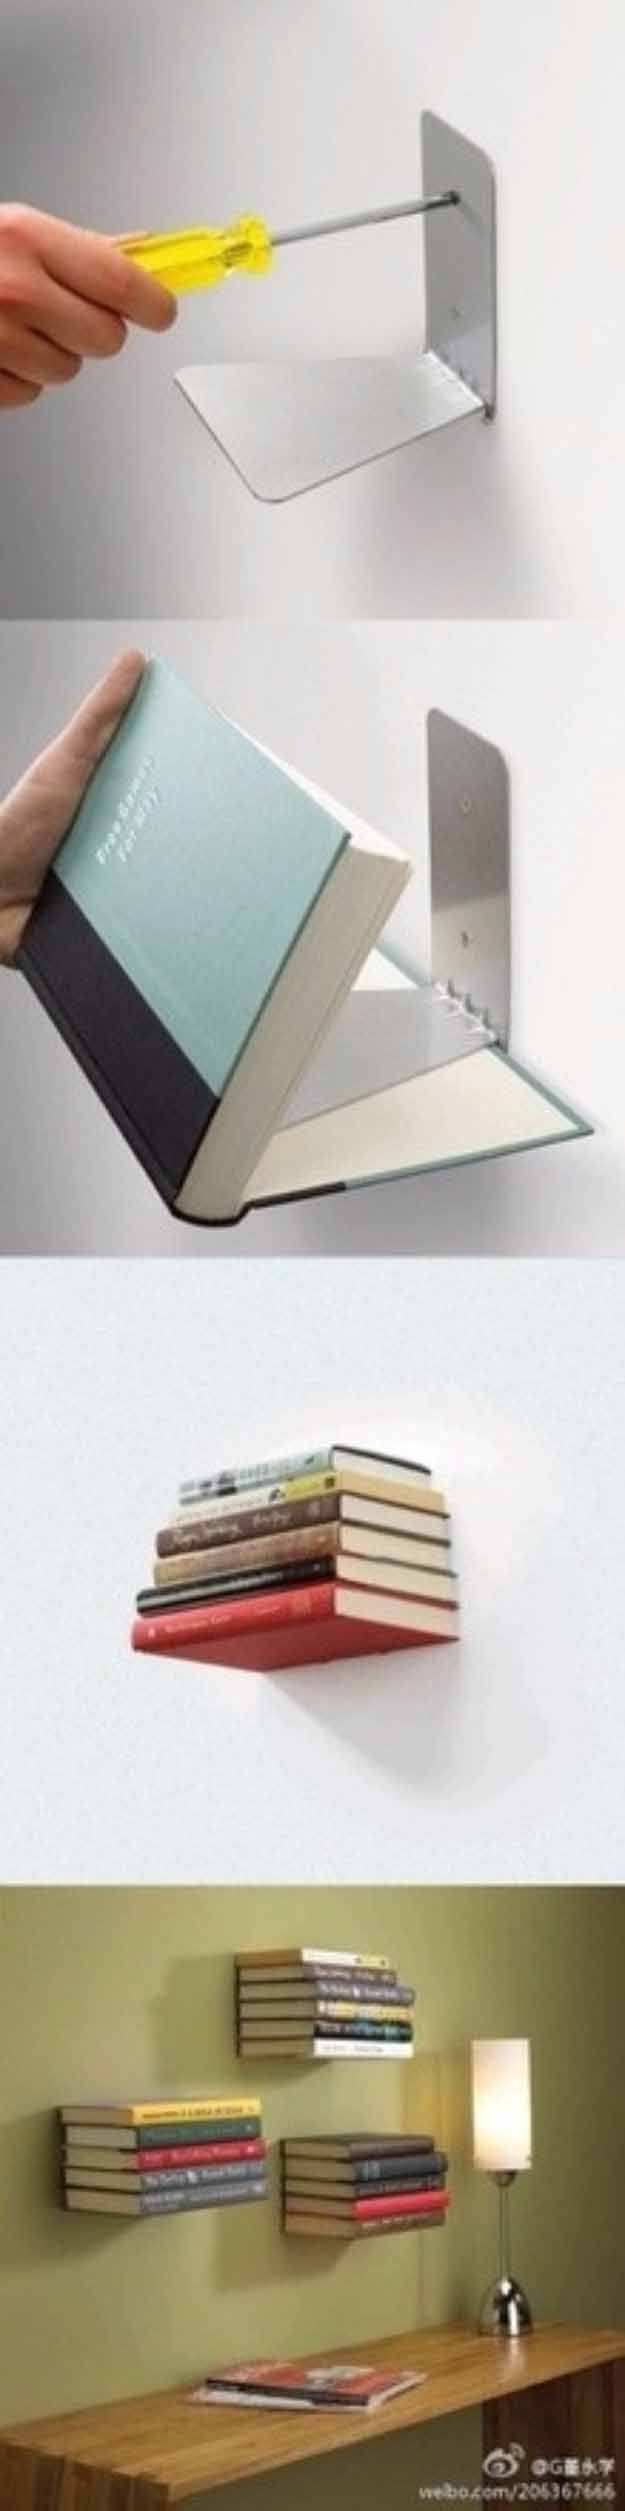 Cool Crafts You Can Make for Less than 5 Dollars | Cheap DIY Projects Ideas for Teens, Tweens, Kids and Adults | Floating Bookshelves | http://diyprojectsforteens.com/cheap-diy-ideas-for-teens/